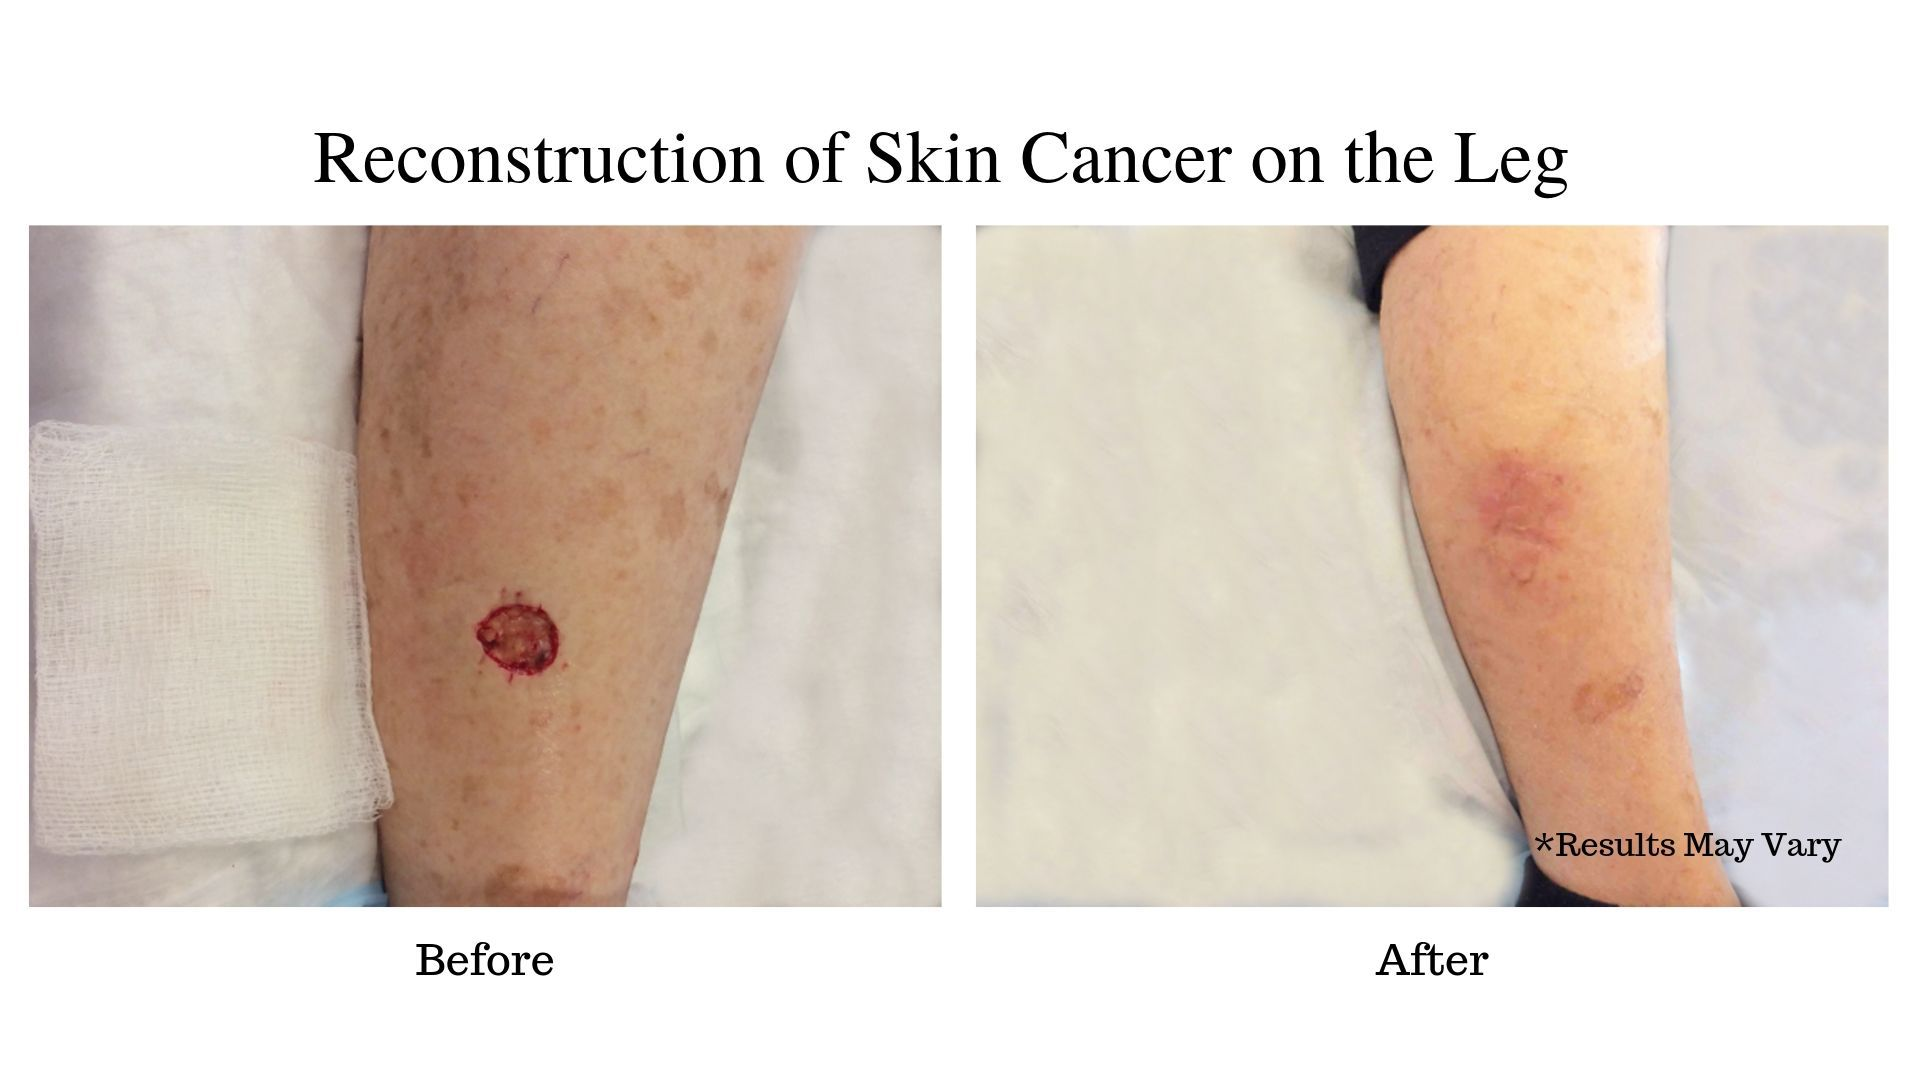 Before and after for a woman undergoing reconstruction of skin cancer on her leg in Pasadena, CA.